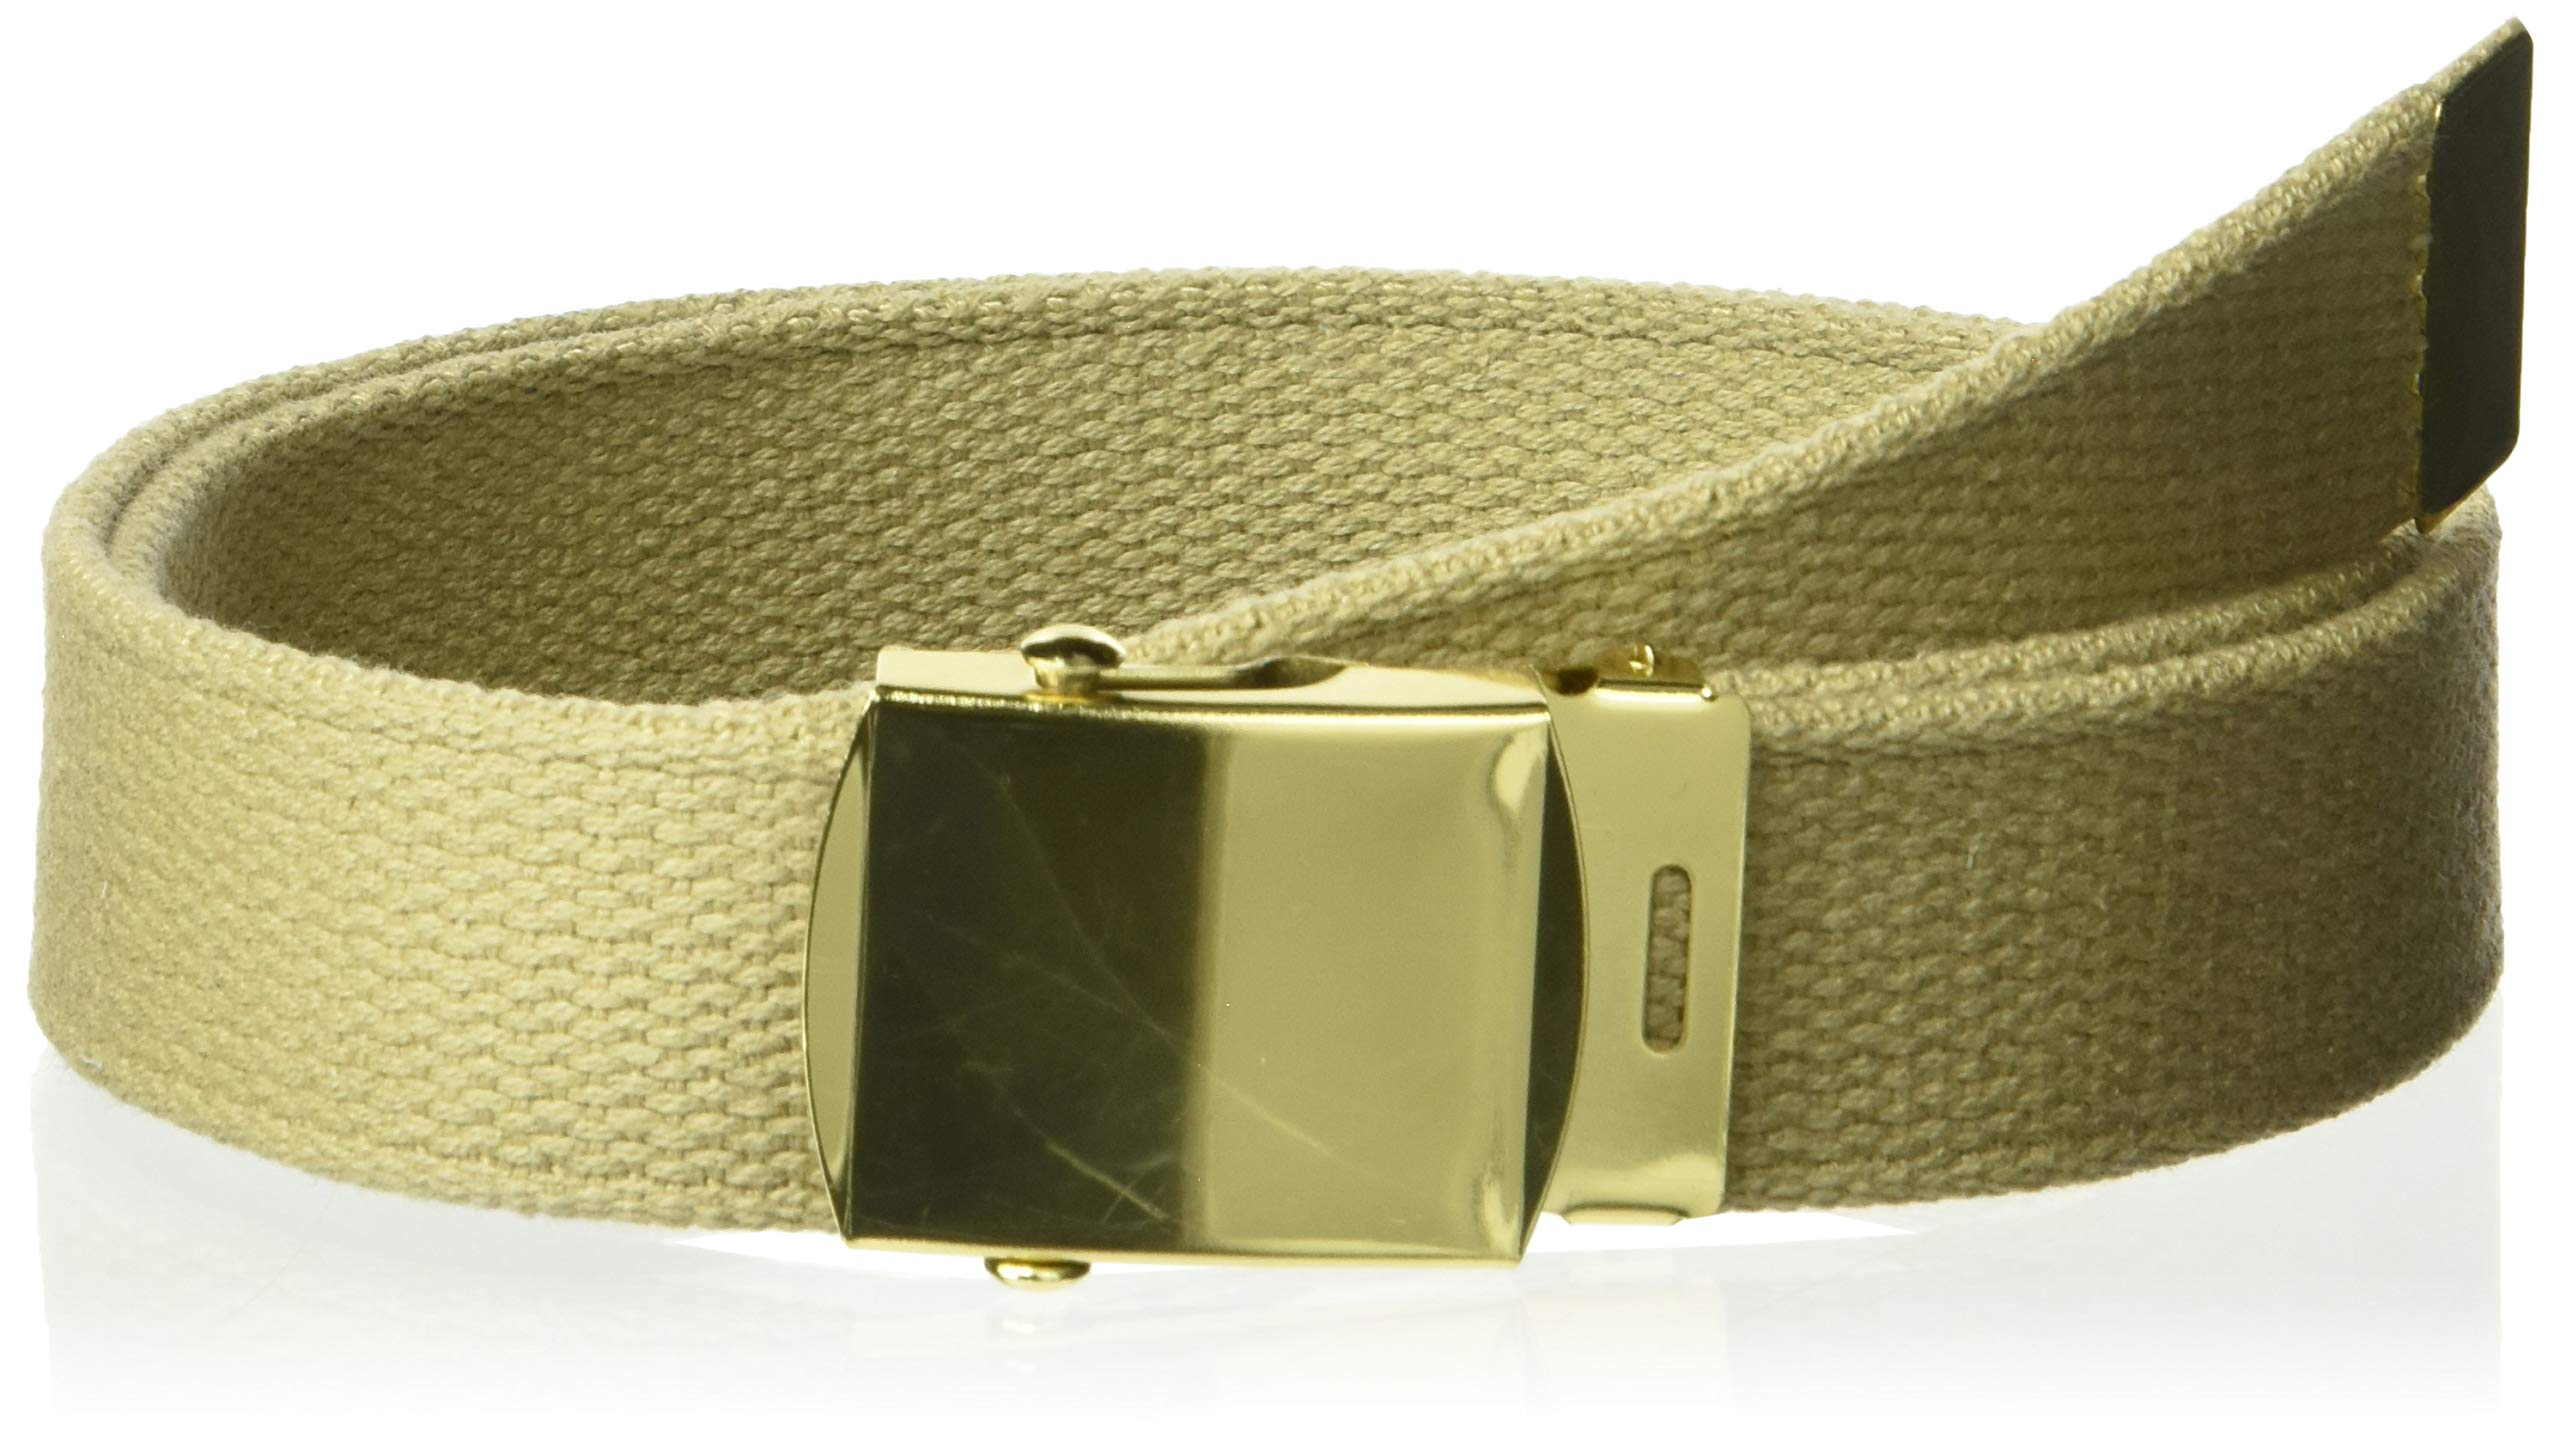 5ive Star Gear Web Belts with Closed Face Buckle, Khaki, 54''